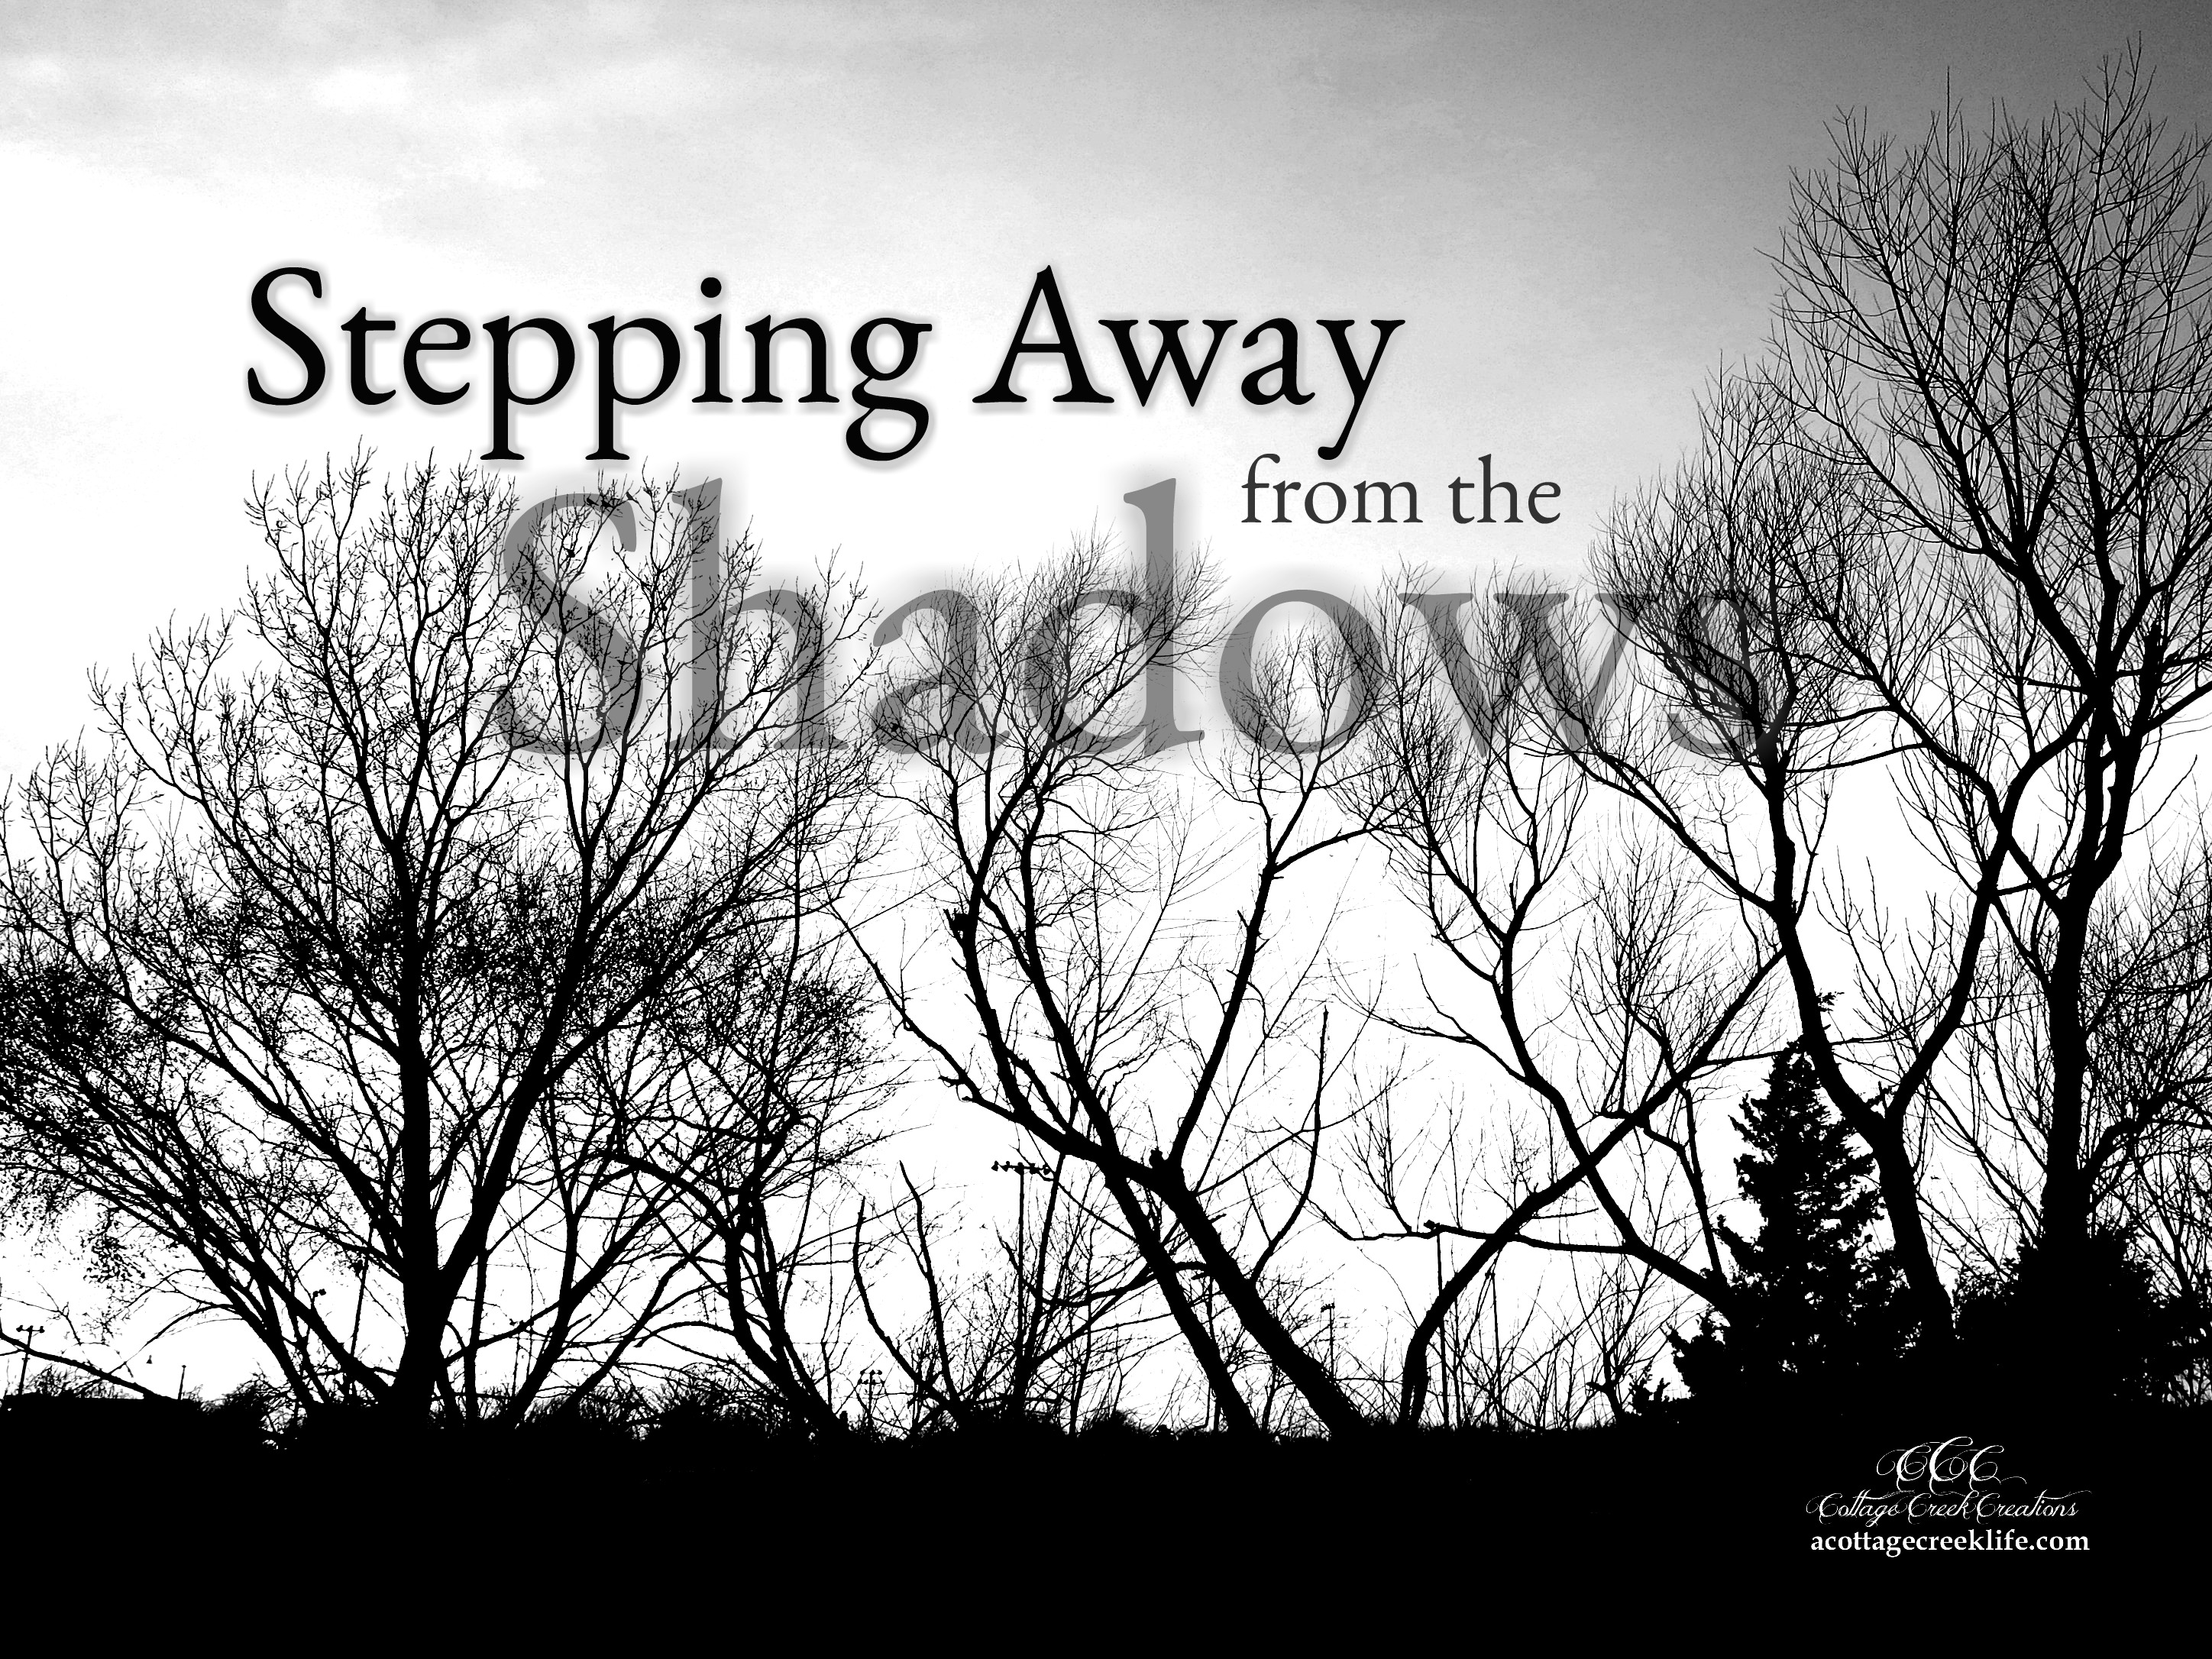 Stepping Away From the Shadows